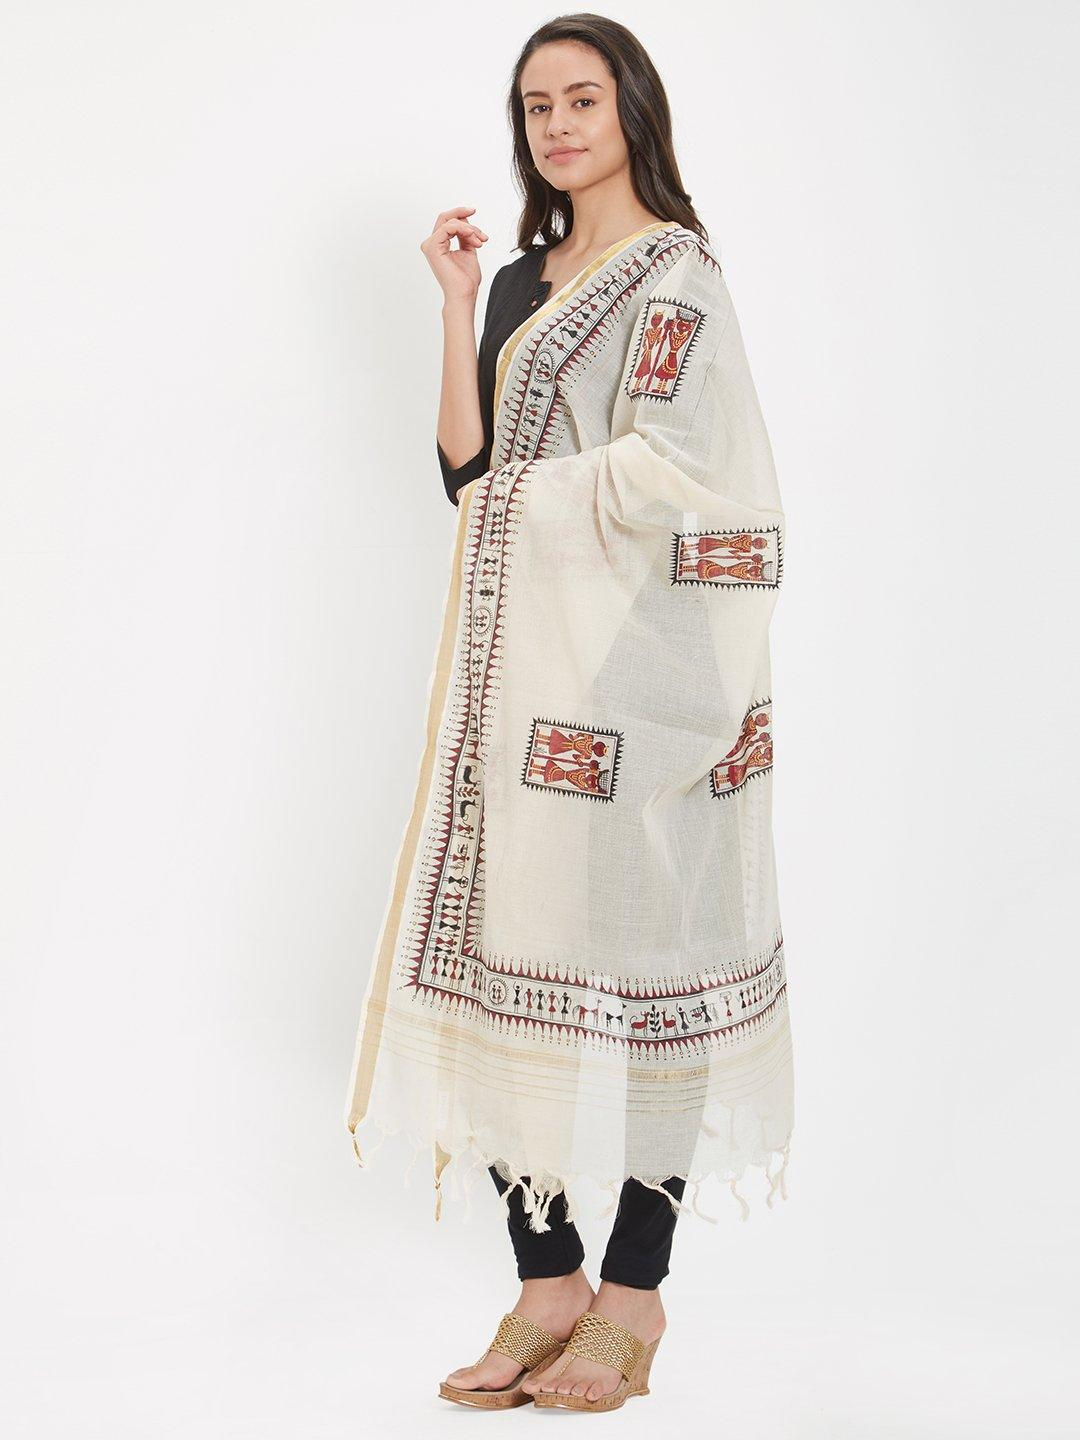 Off-white Dupatta with handpainted tribal motifs